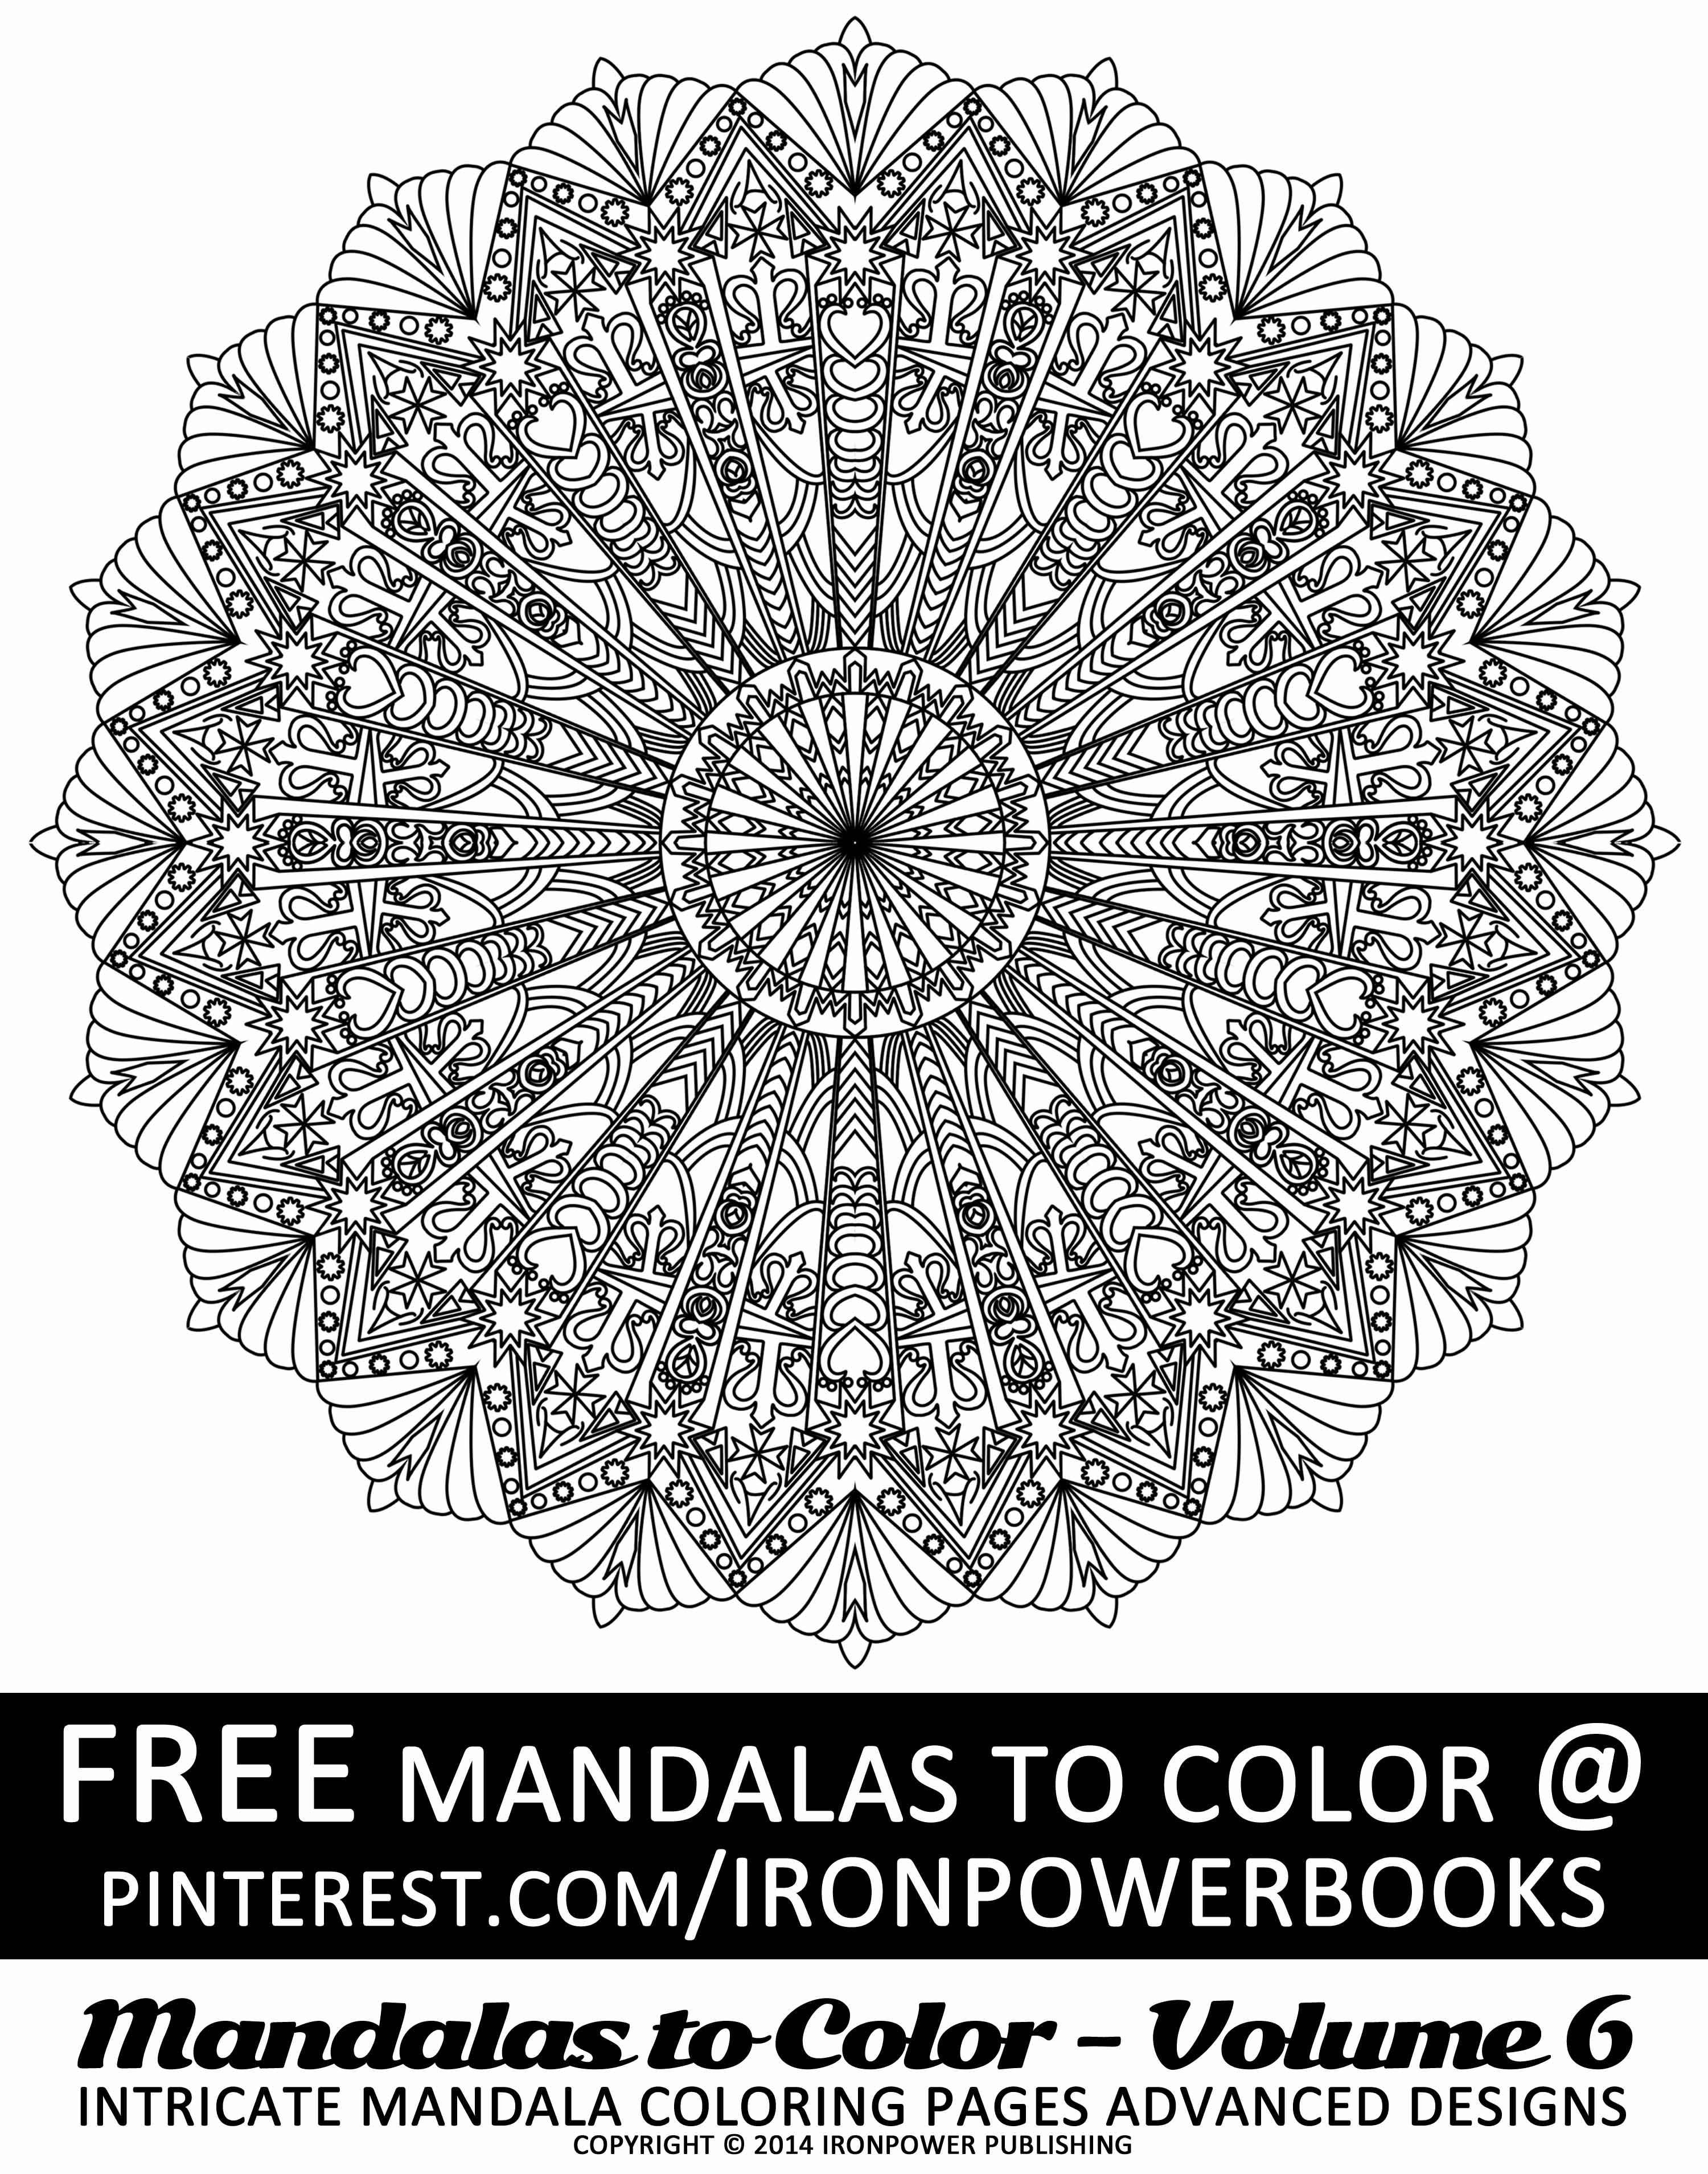 Pin by Elizabeth Bell on MANDALAS Coloring pages